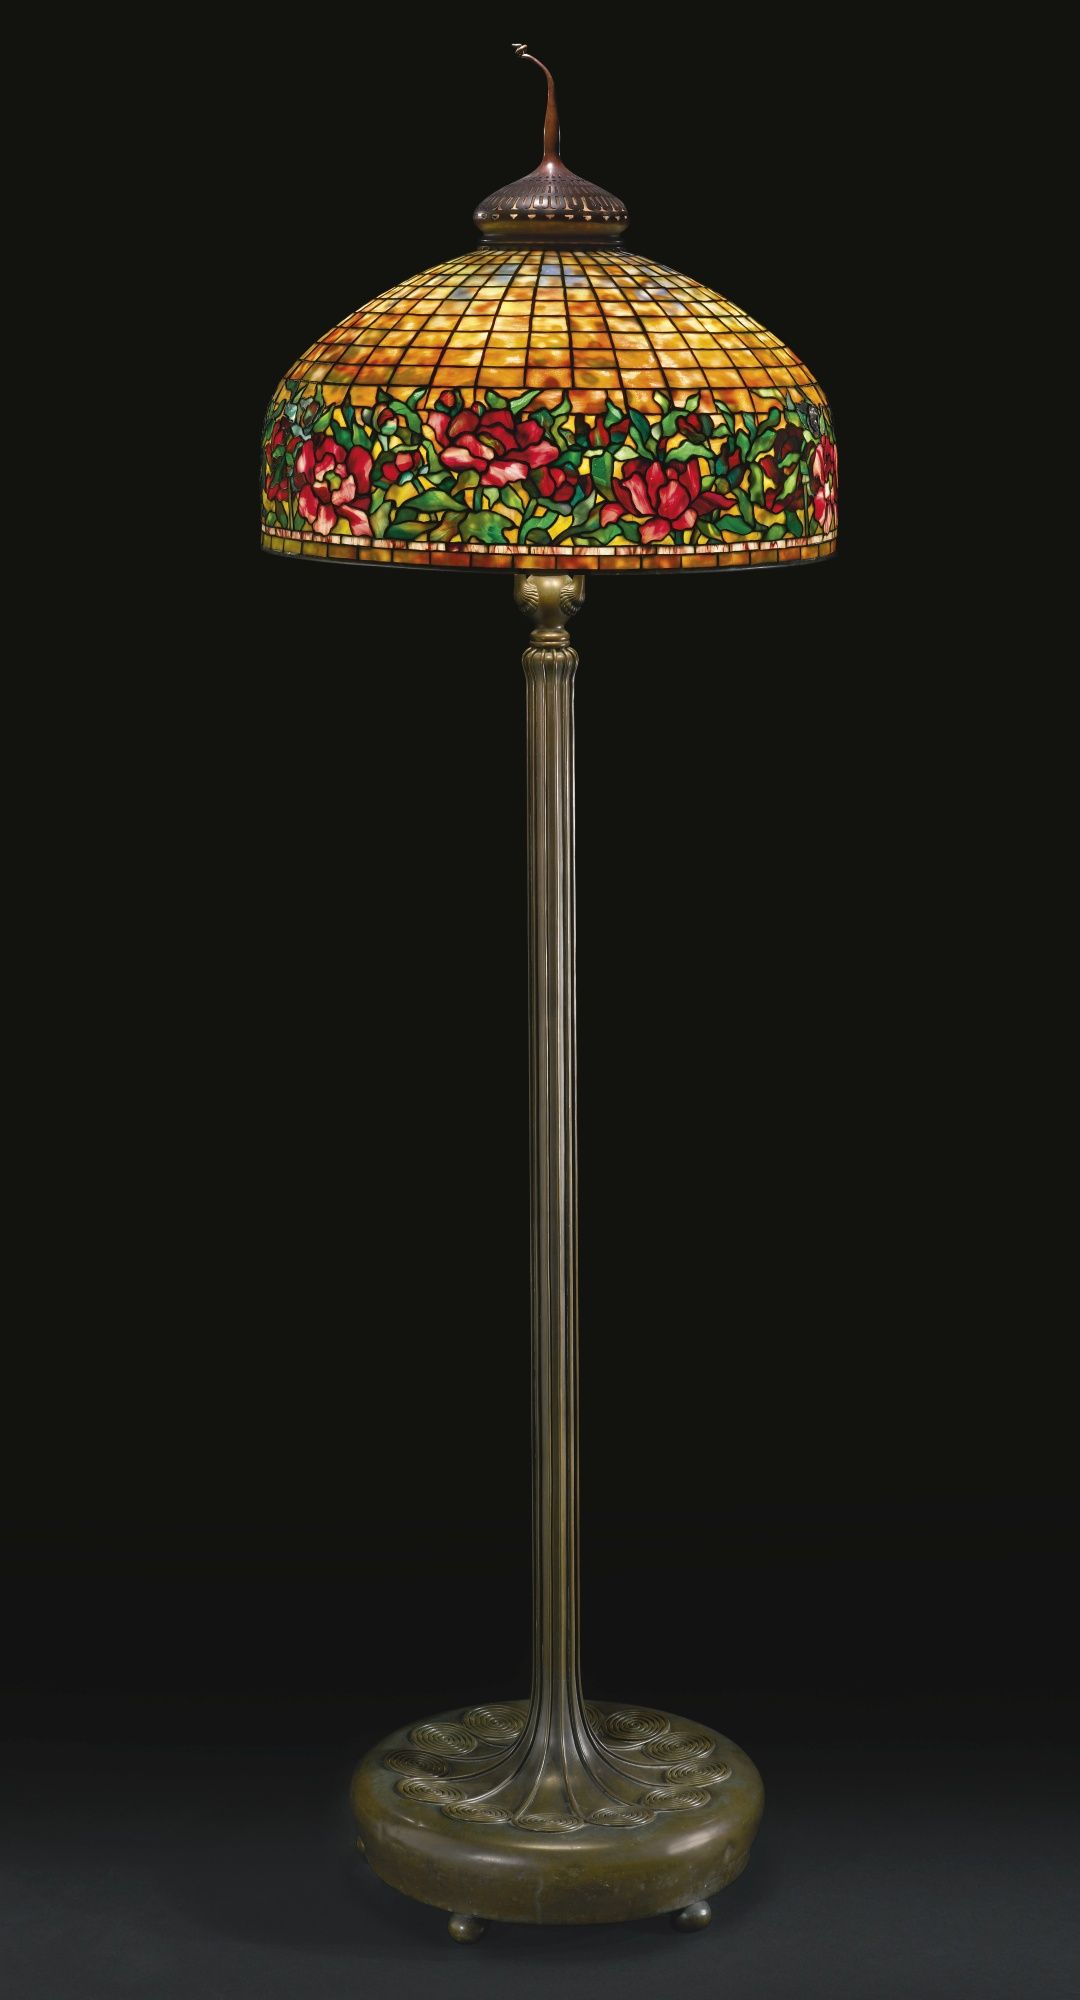 Tiffany Studios New York Favrile Leaded Glass And Patinated Bronze Floor Lamp Stained Glass Lamp Shades Lamp Tiffany Style Lamp